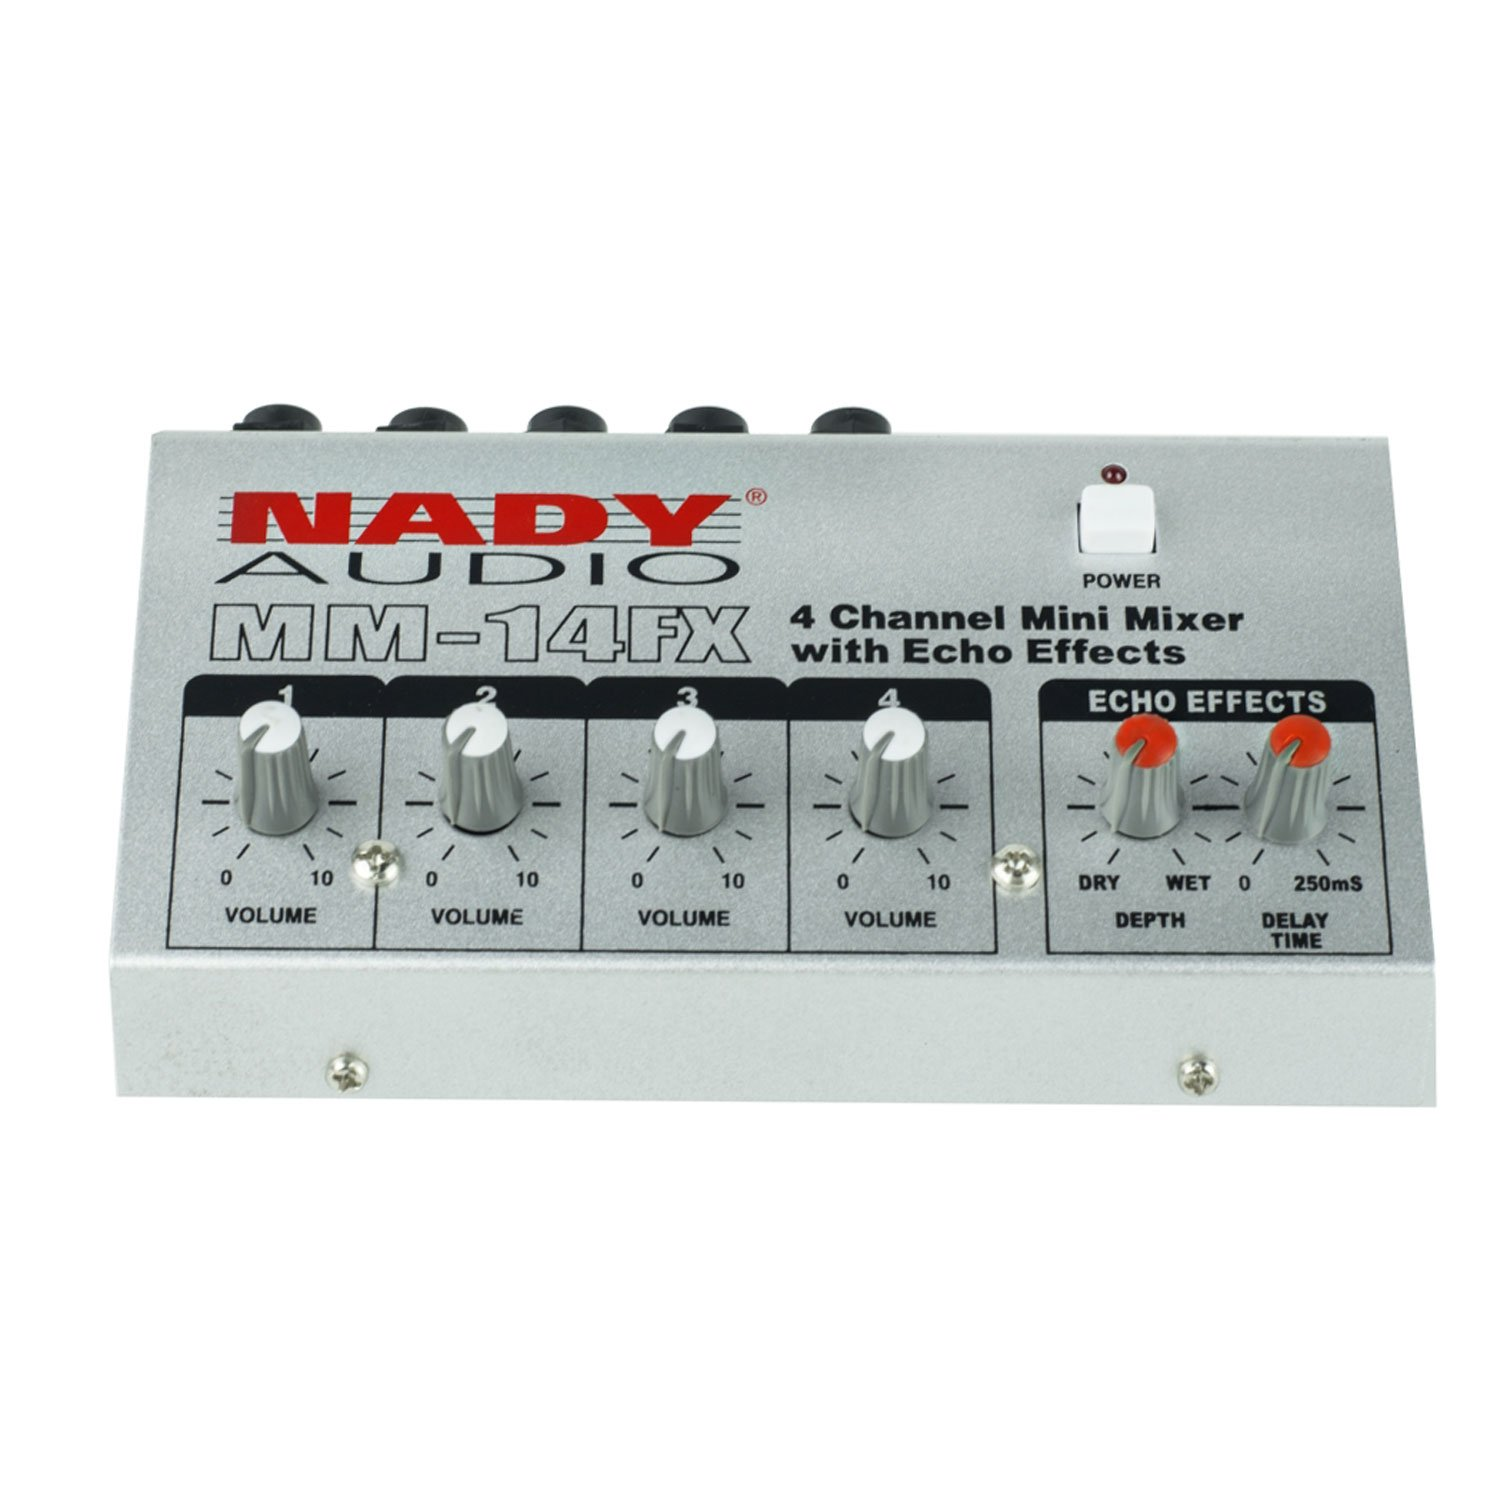 Nady MM 14FX 4 Channel Microphone integrated